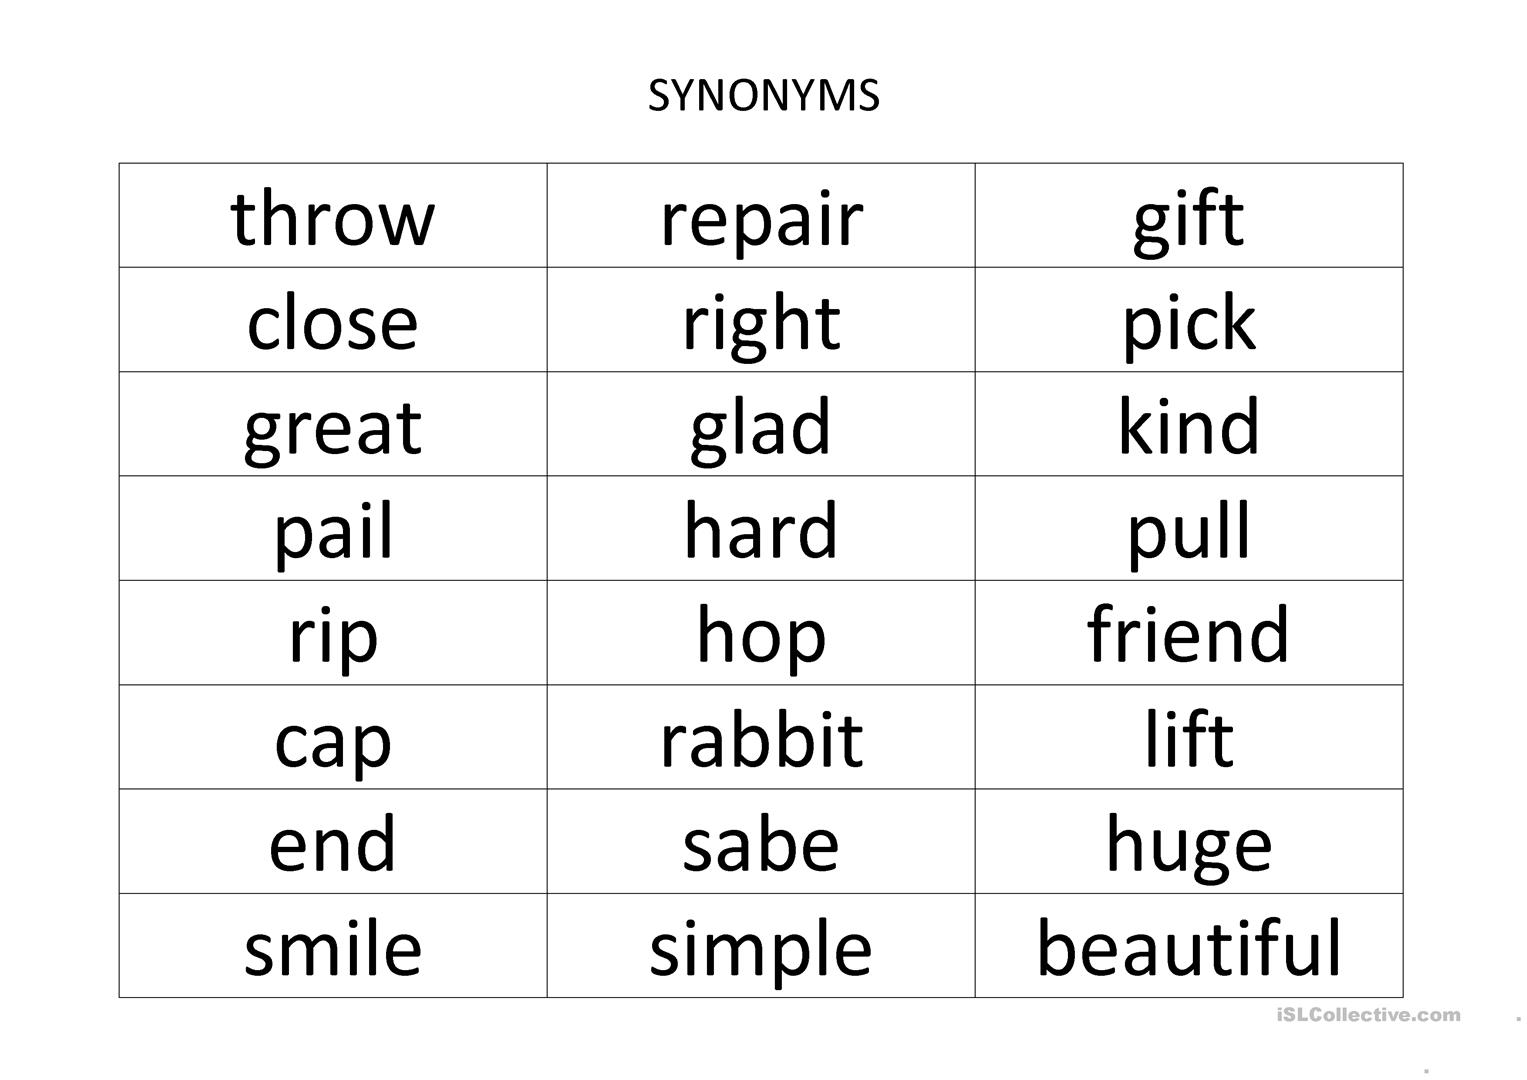 image about Synonyms and Antonyms Printable Games titled Bingo Synonyms - Antonyms - English ESL Worksheets